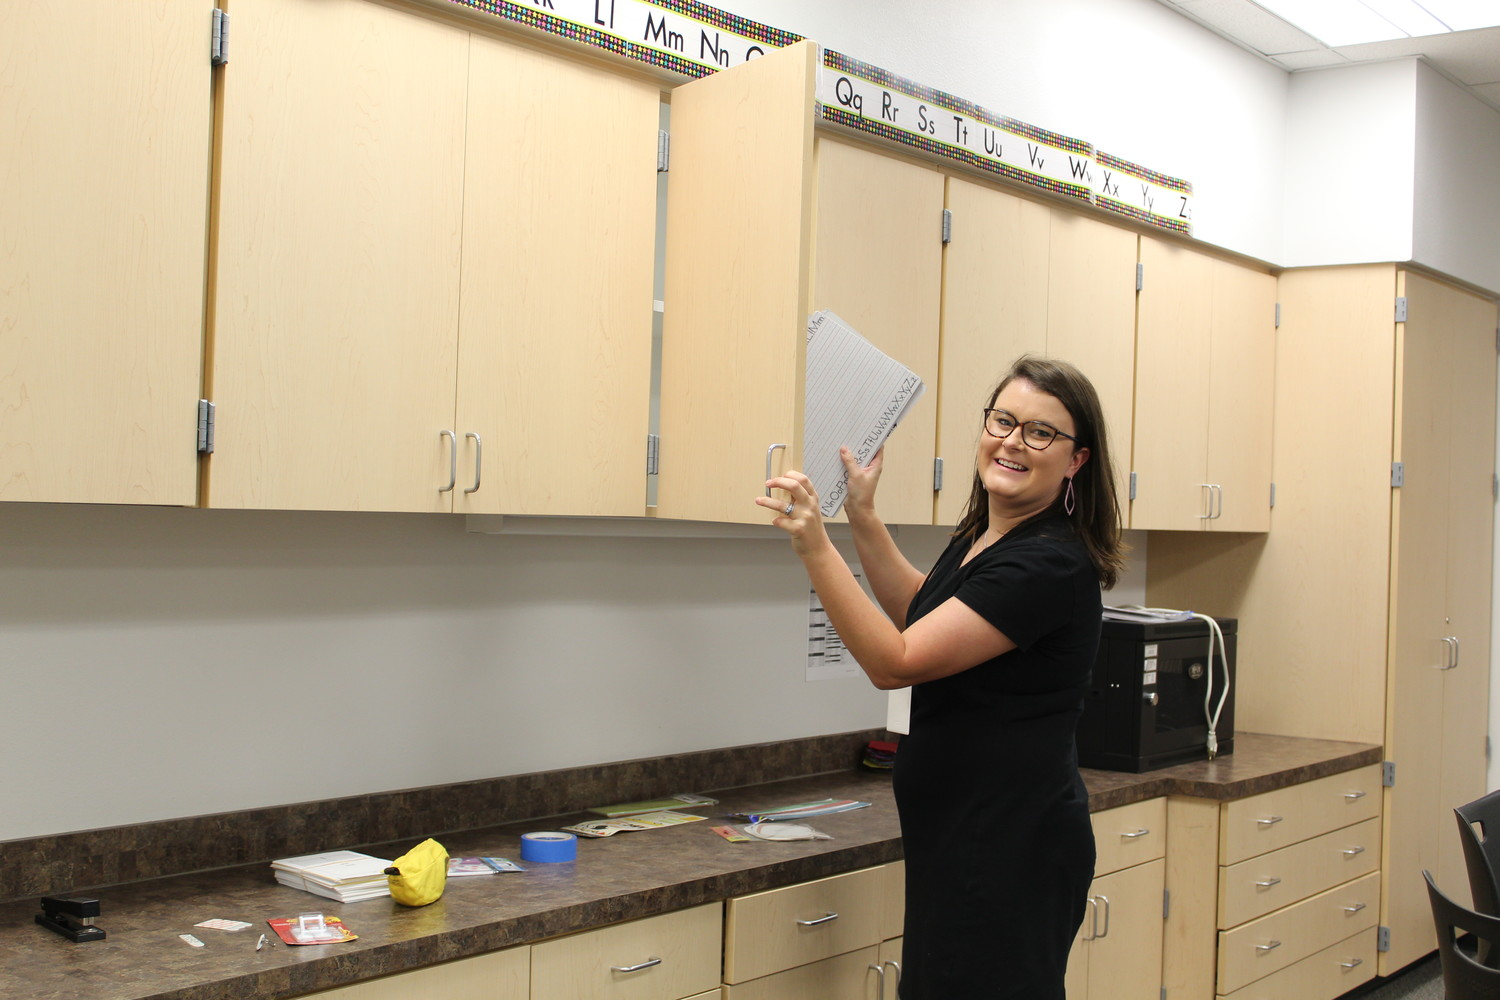 New Camacho Elementary teacher Bailey Ayres assists in set-up of Elinore Ramos' second grade classroom. Ayres will teach all subjects for a first grade classroom.